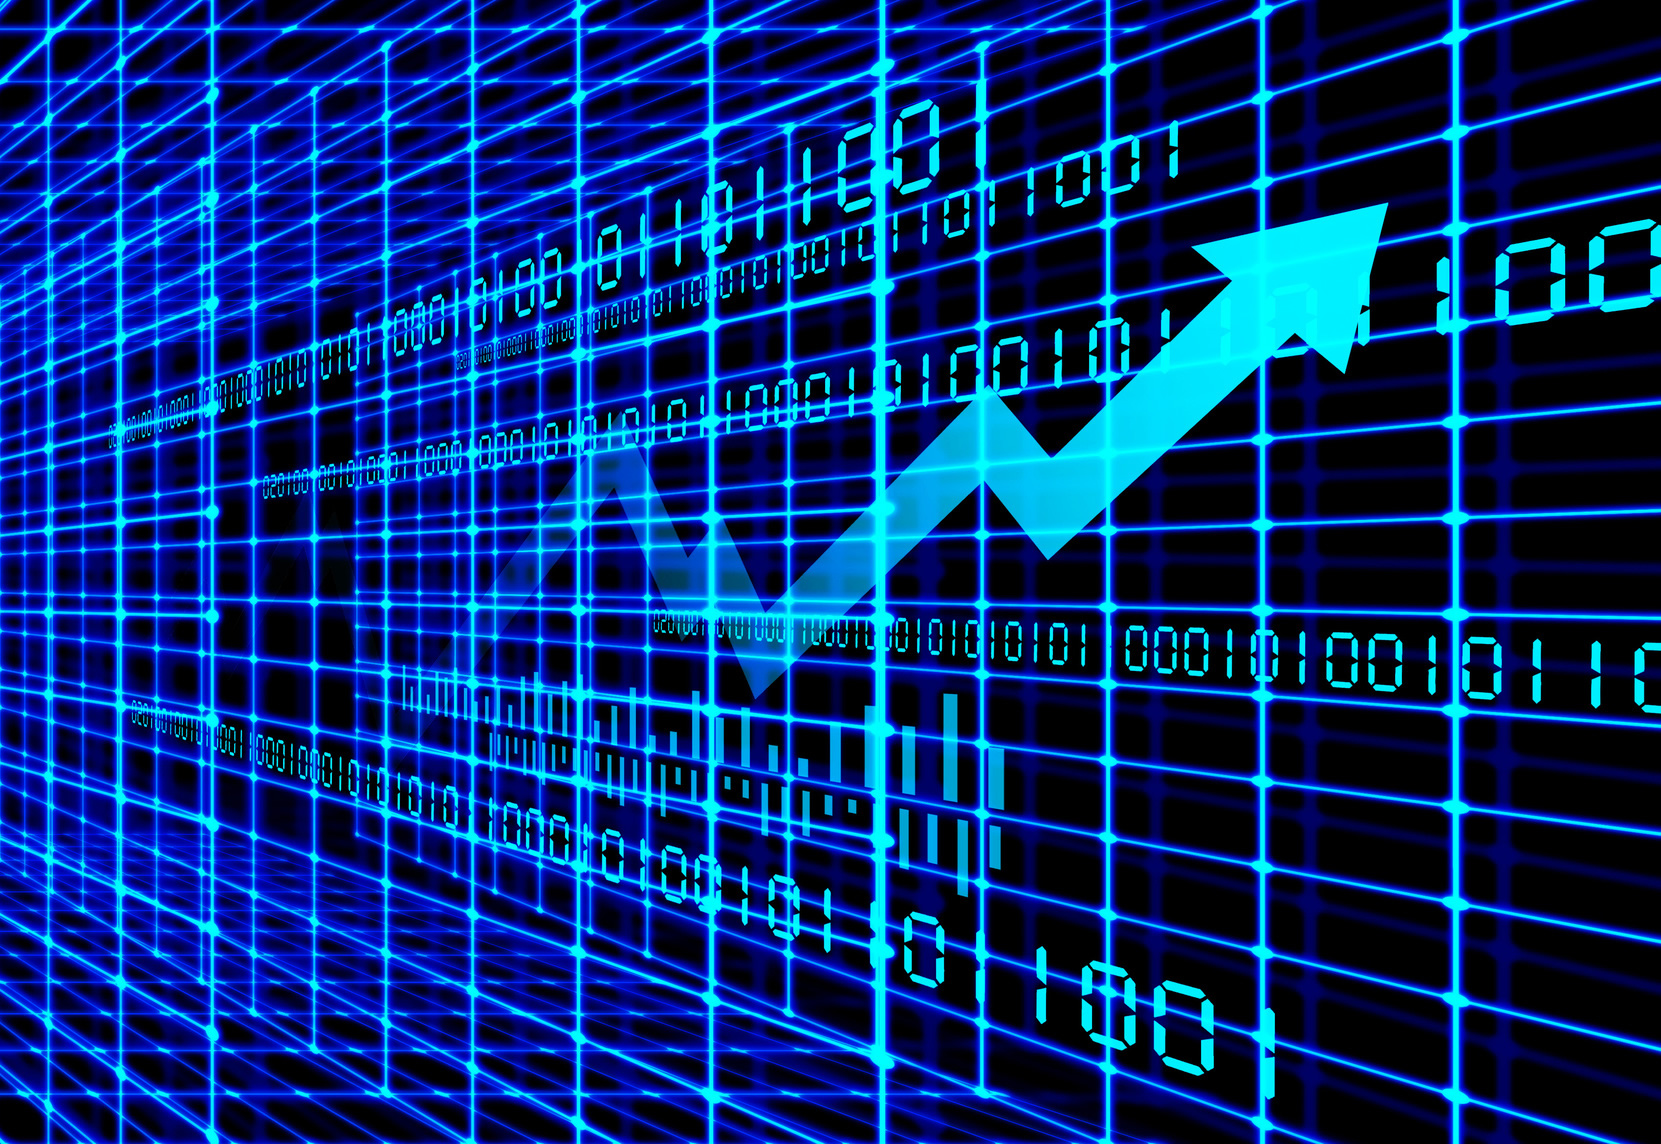 Top Trading Guidance For Effective And Profitable Stock Tips